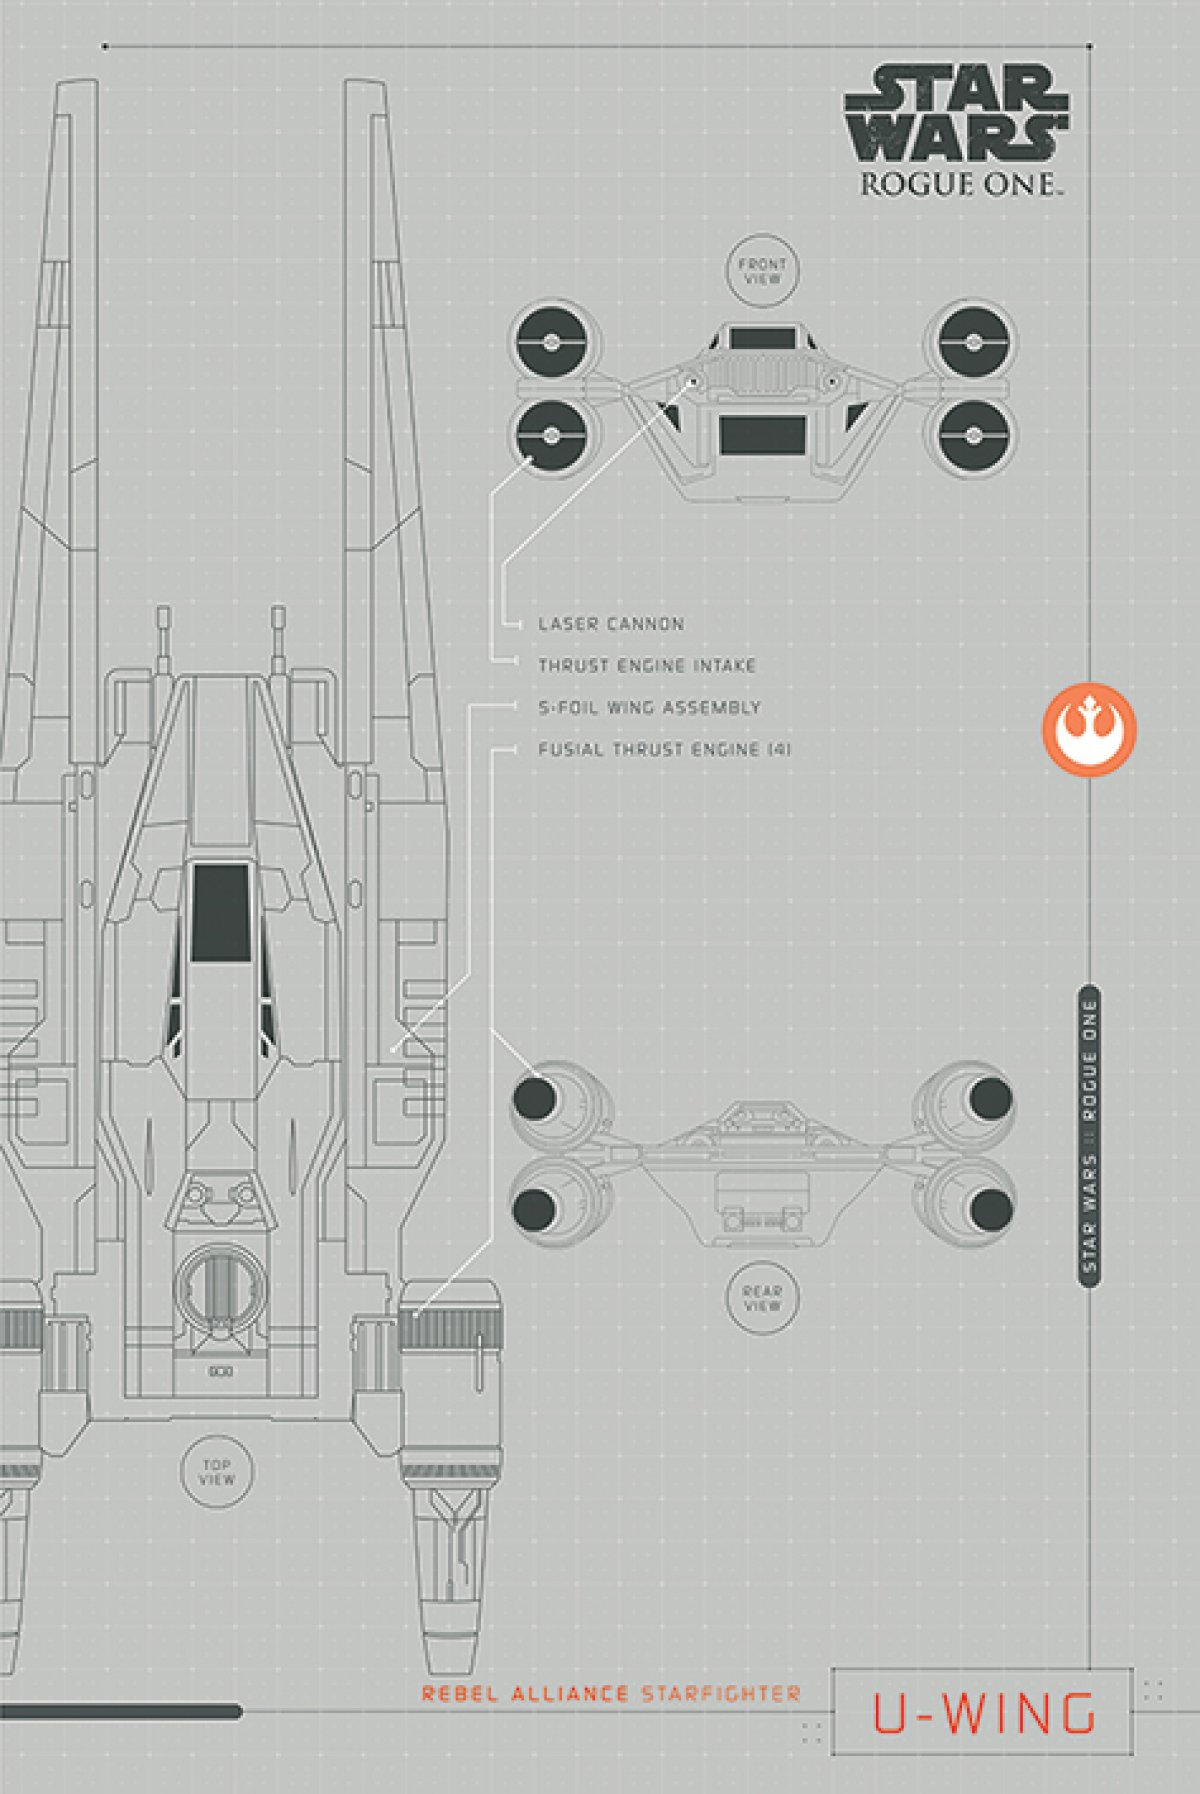 New Rogue One Official Posters Pyramid Int Hd A Star Wars Story U Wing Diagram September 8 2016